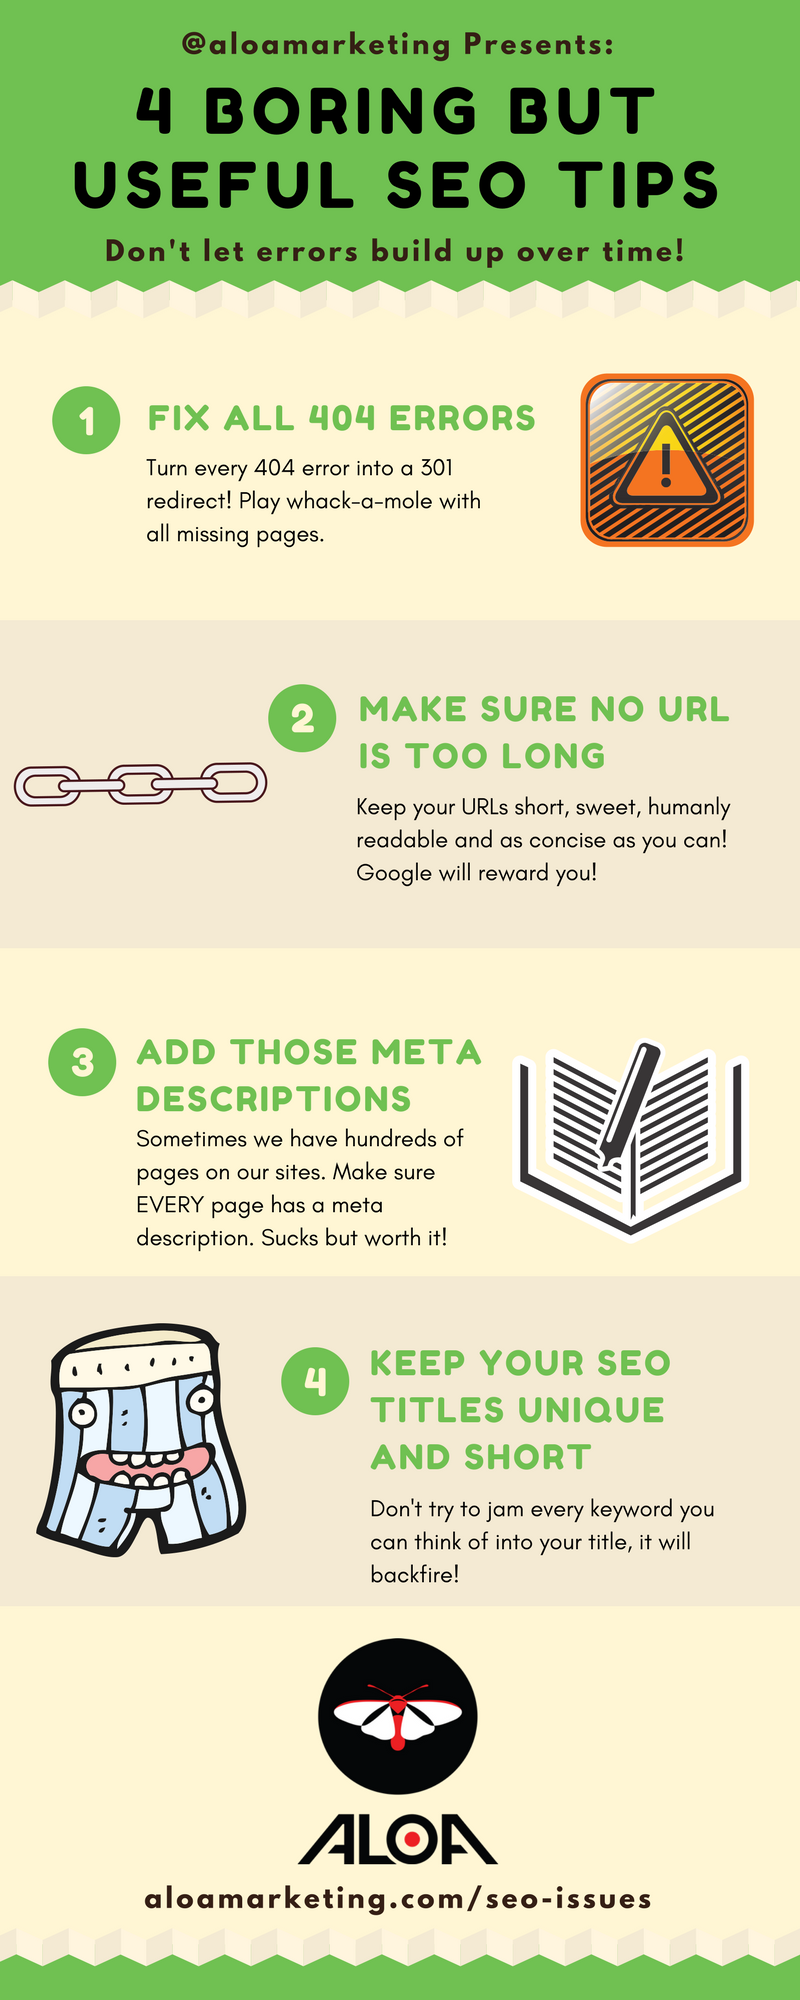 4 Boring but Useful SEO Tips